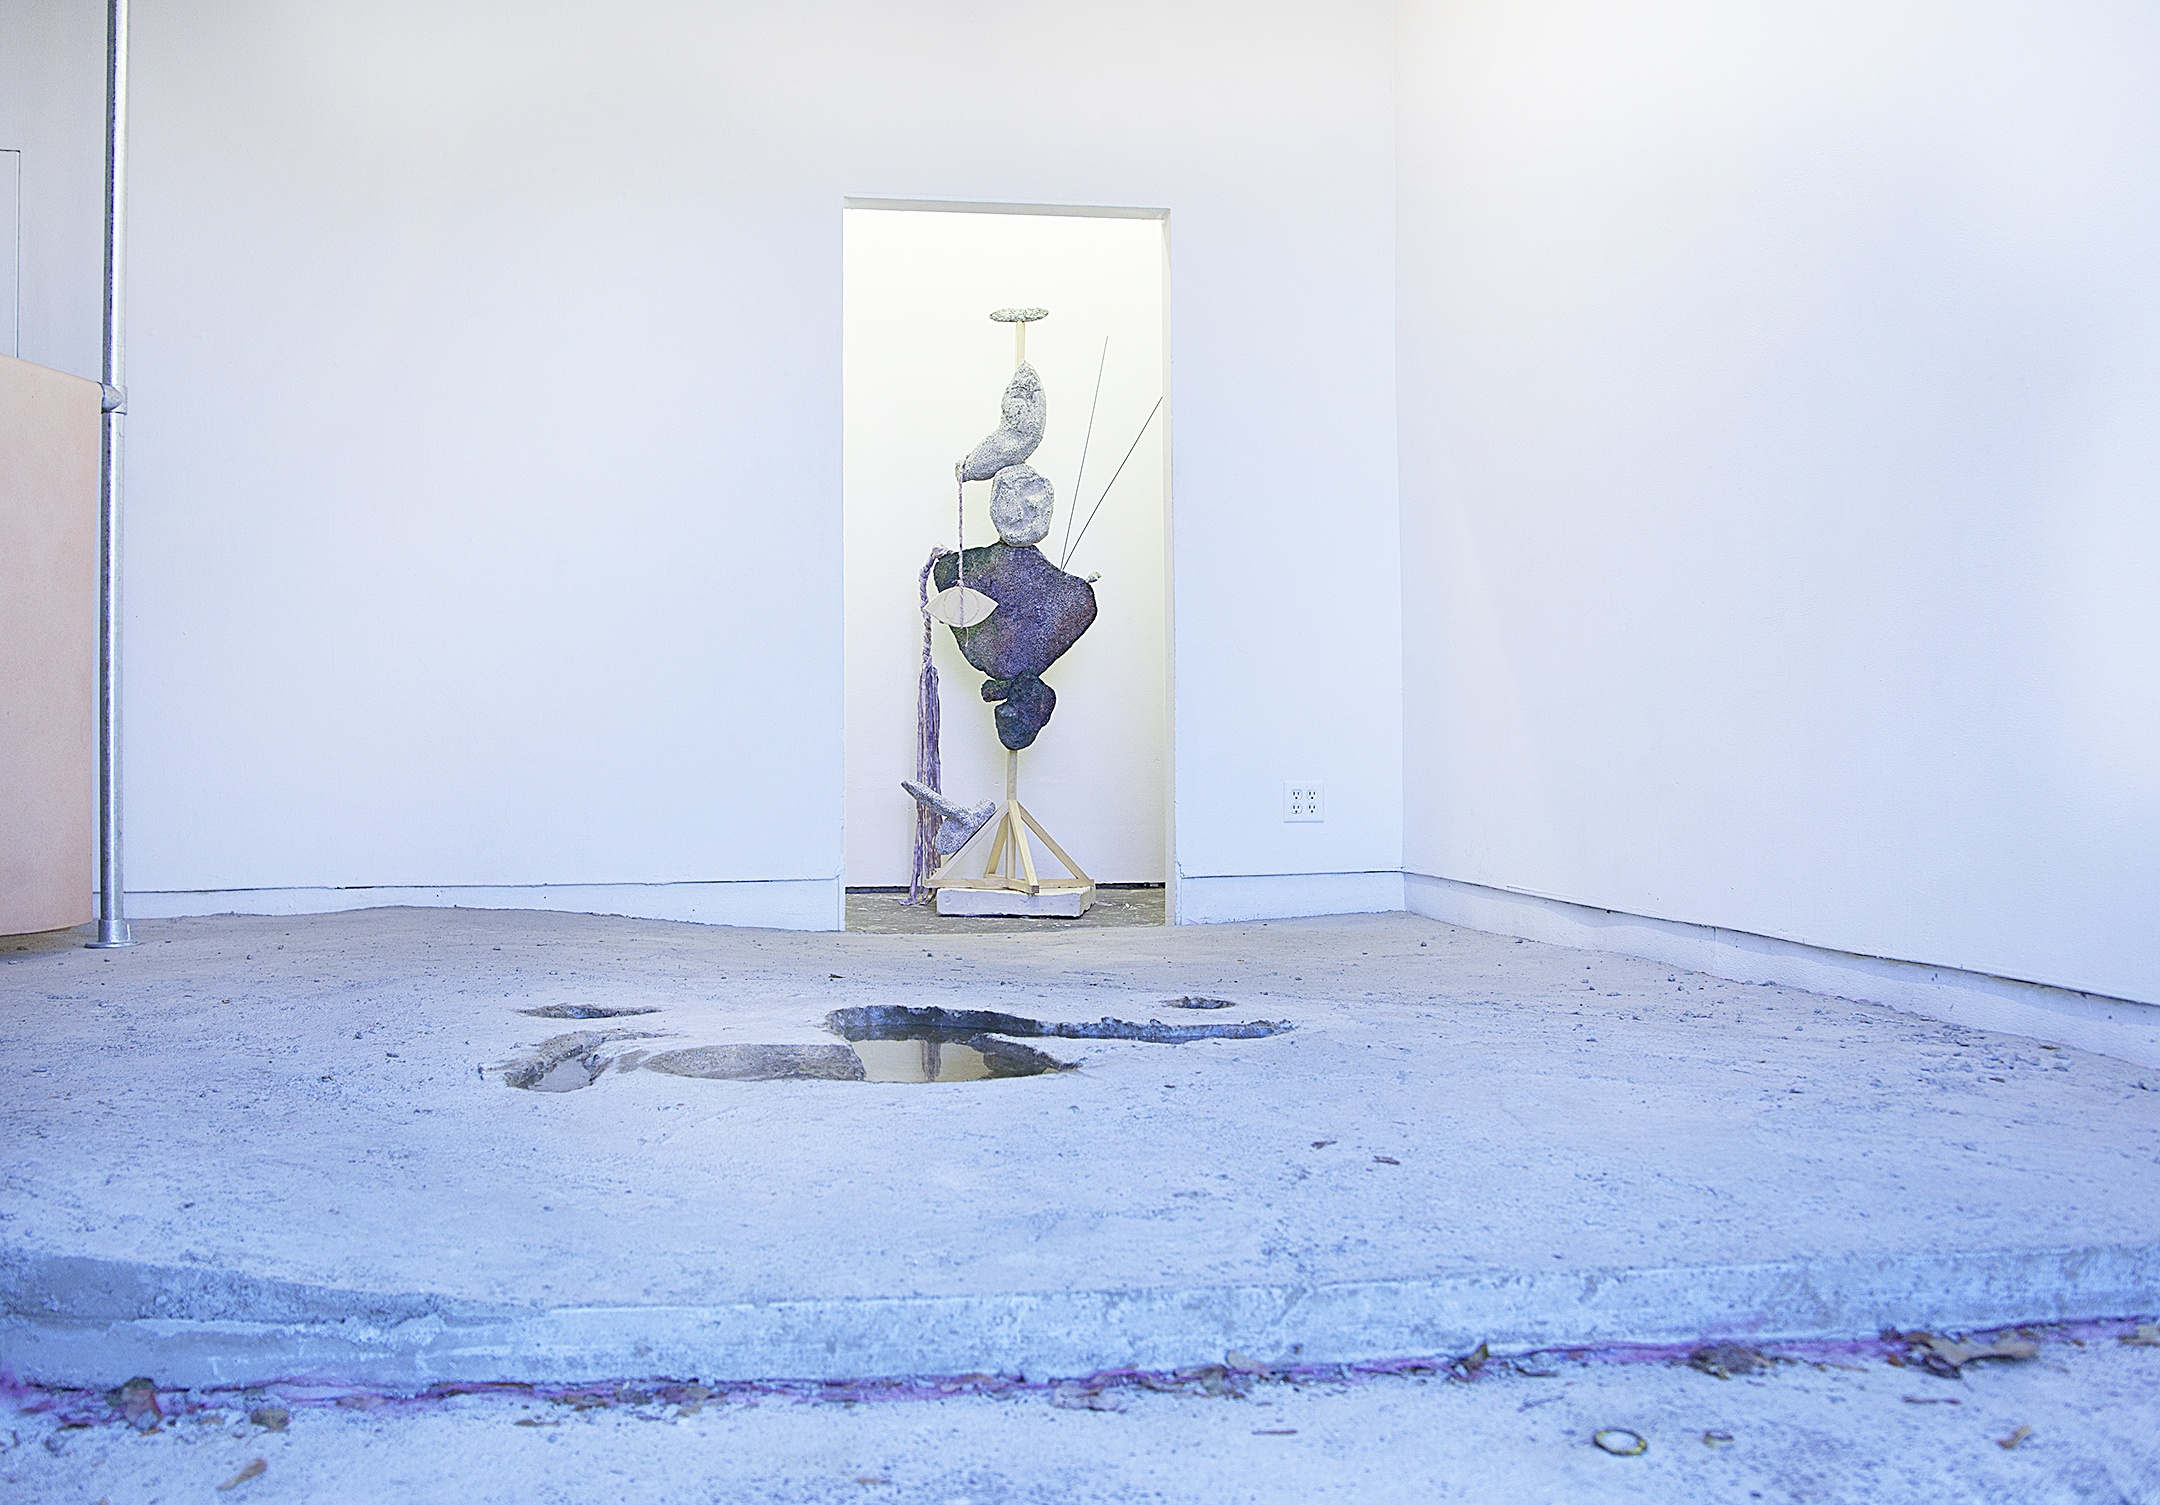 Installation view, Permanent Construction, Open Source Gallery, 2016. Photo by Barbara Nilsen.